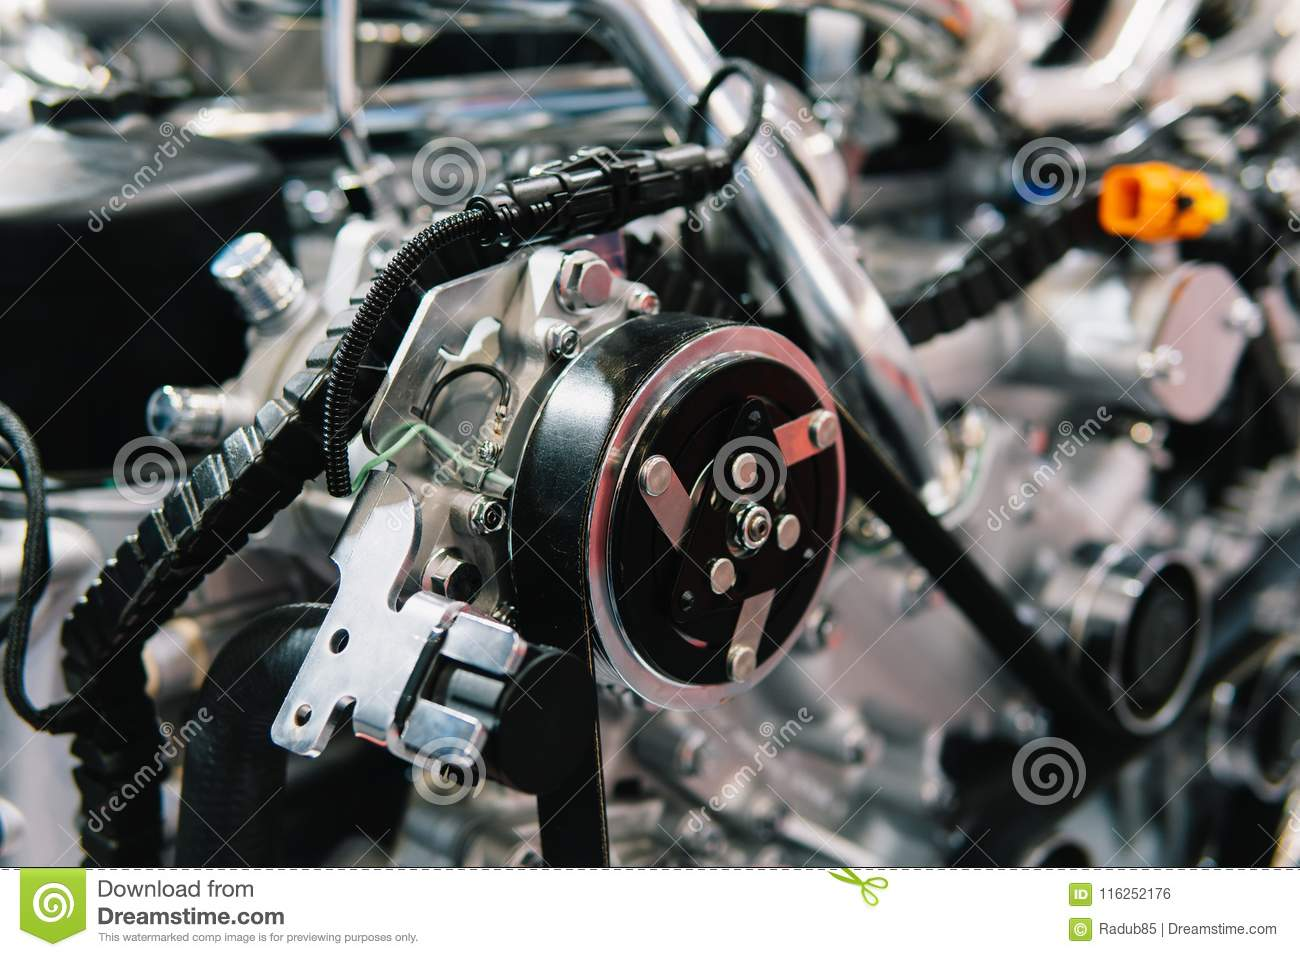 Truck Engine Motor Components In Car Service Stock Photo - Image of ...